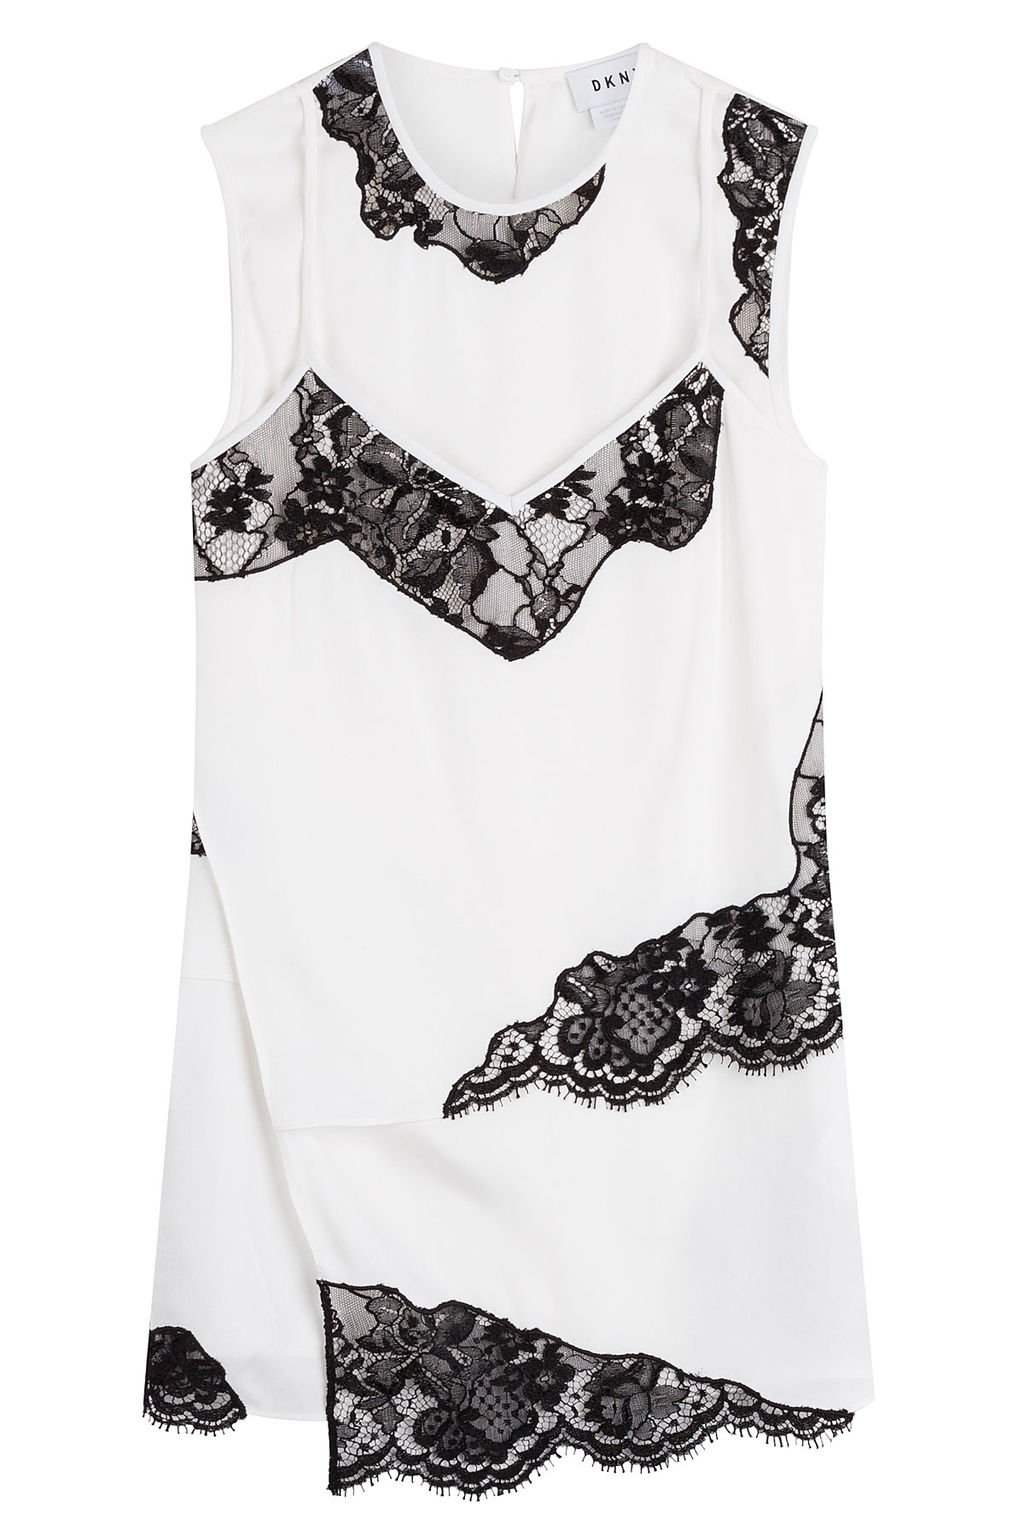 Silk Top With Lace Inserts - neckline: round neck; pattern: plain; sleeve style: sleeveless; predominant colour: white; occasions: casual, creative work; length: standard; style: top; fibres: silk - 100%; fit: loose; sleeve length: sleeveless; texture group: silky - light; pattern type: fabric; embellishment: lace; season: a/w 2016; wardrobe: highlight